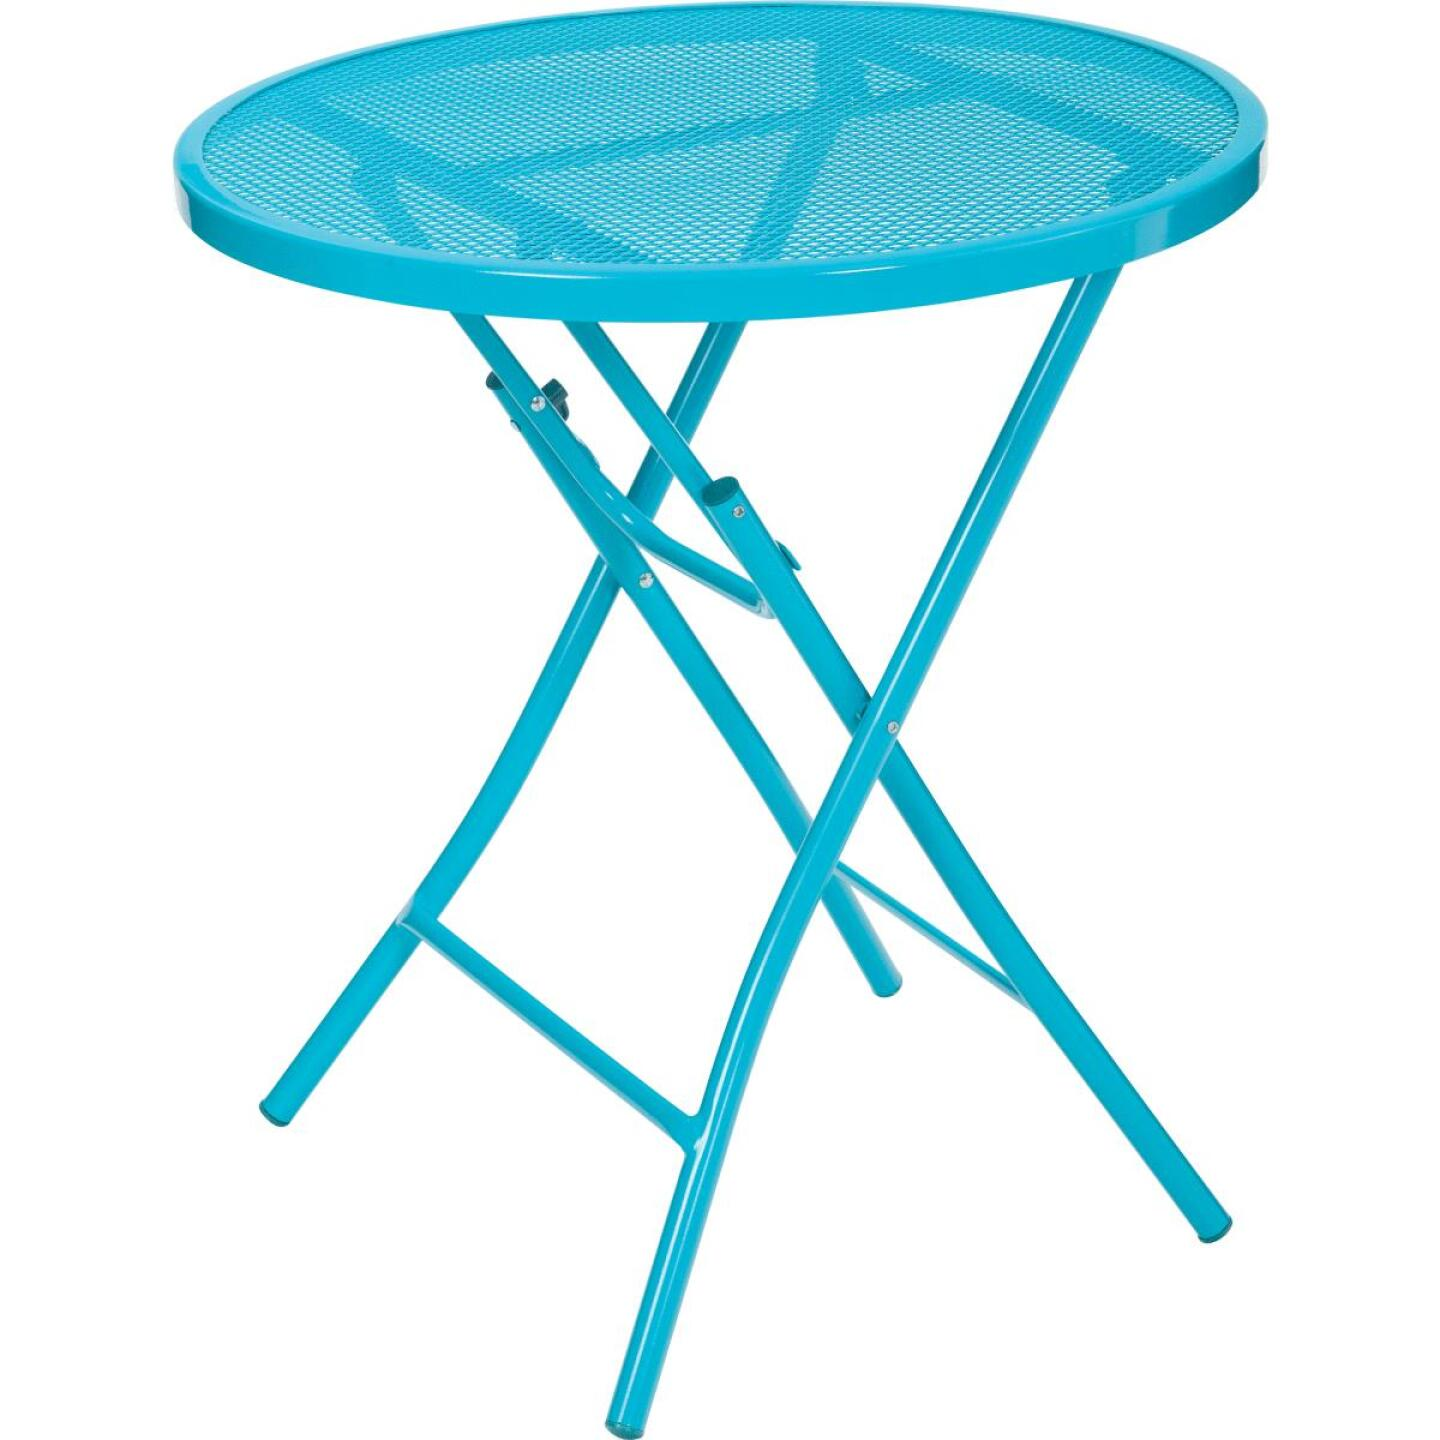 Outdoor Expressions Cruiser 3-Piece Folding Turquoise Bistro Set Image 3